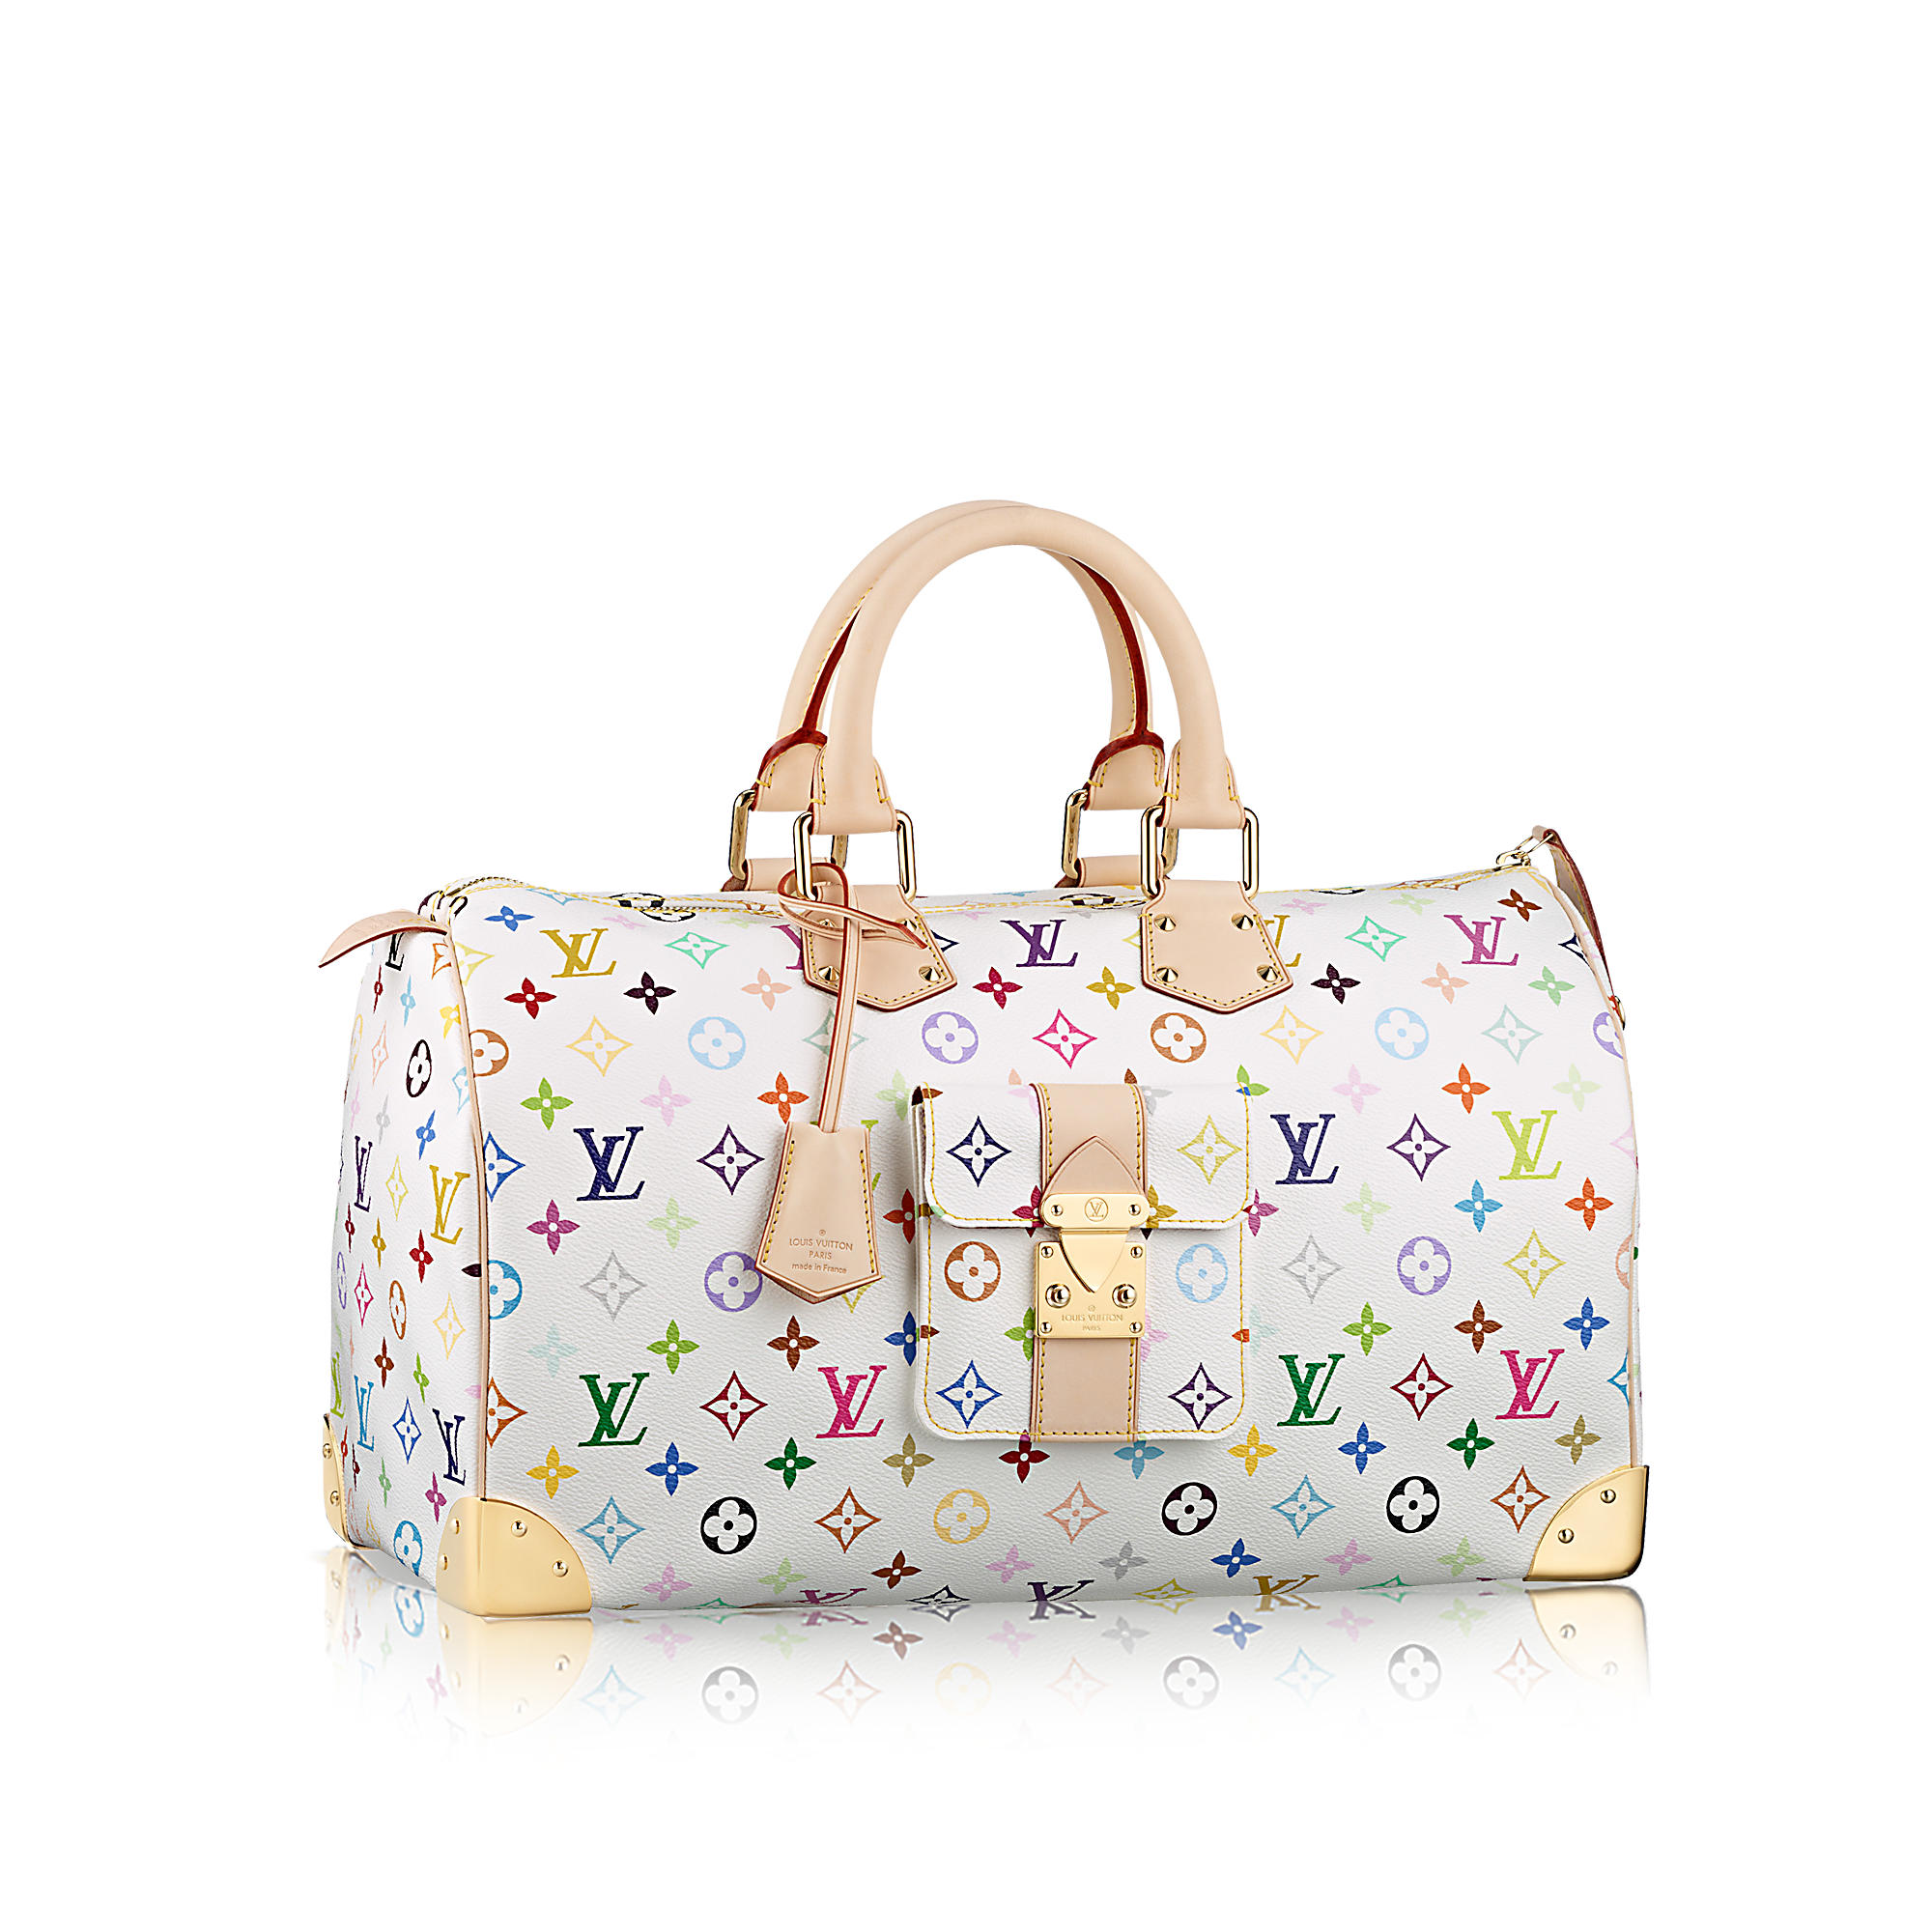 Louis Vuitton Monogram Multicolor Speedy Replica Bag